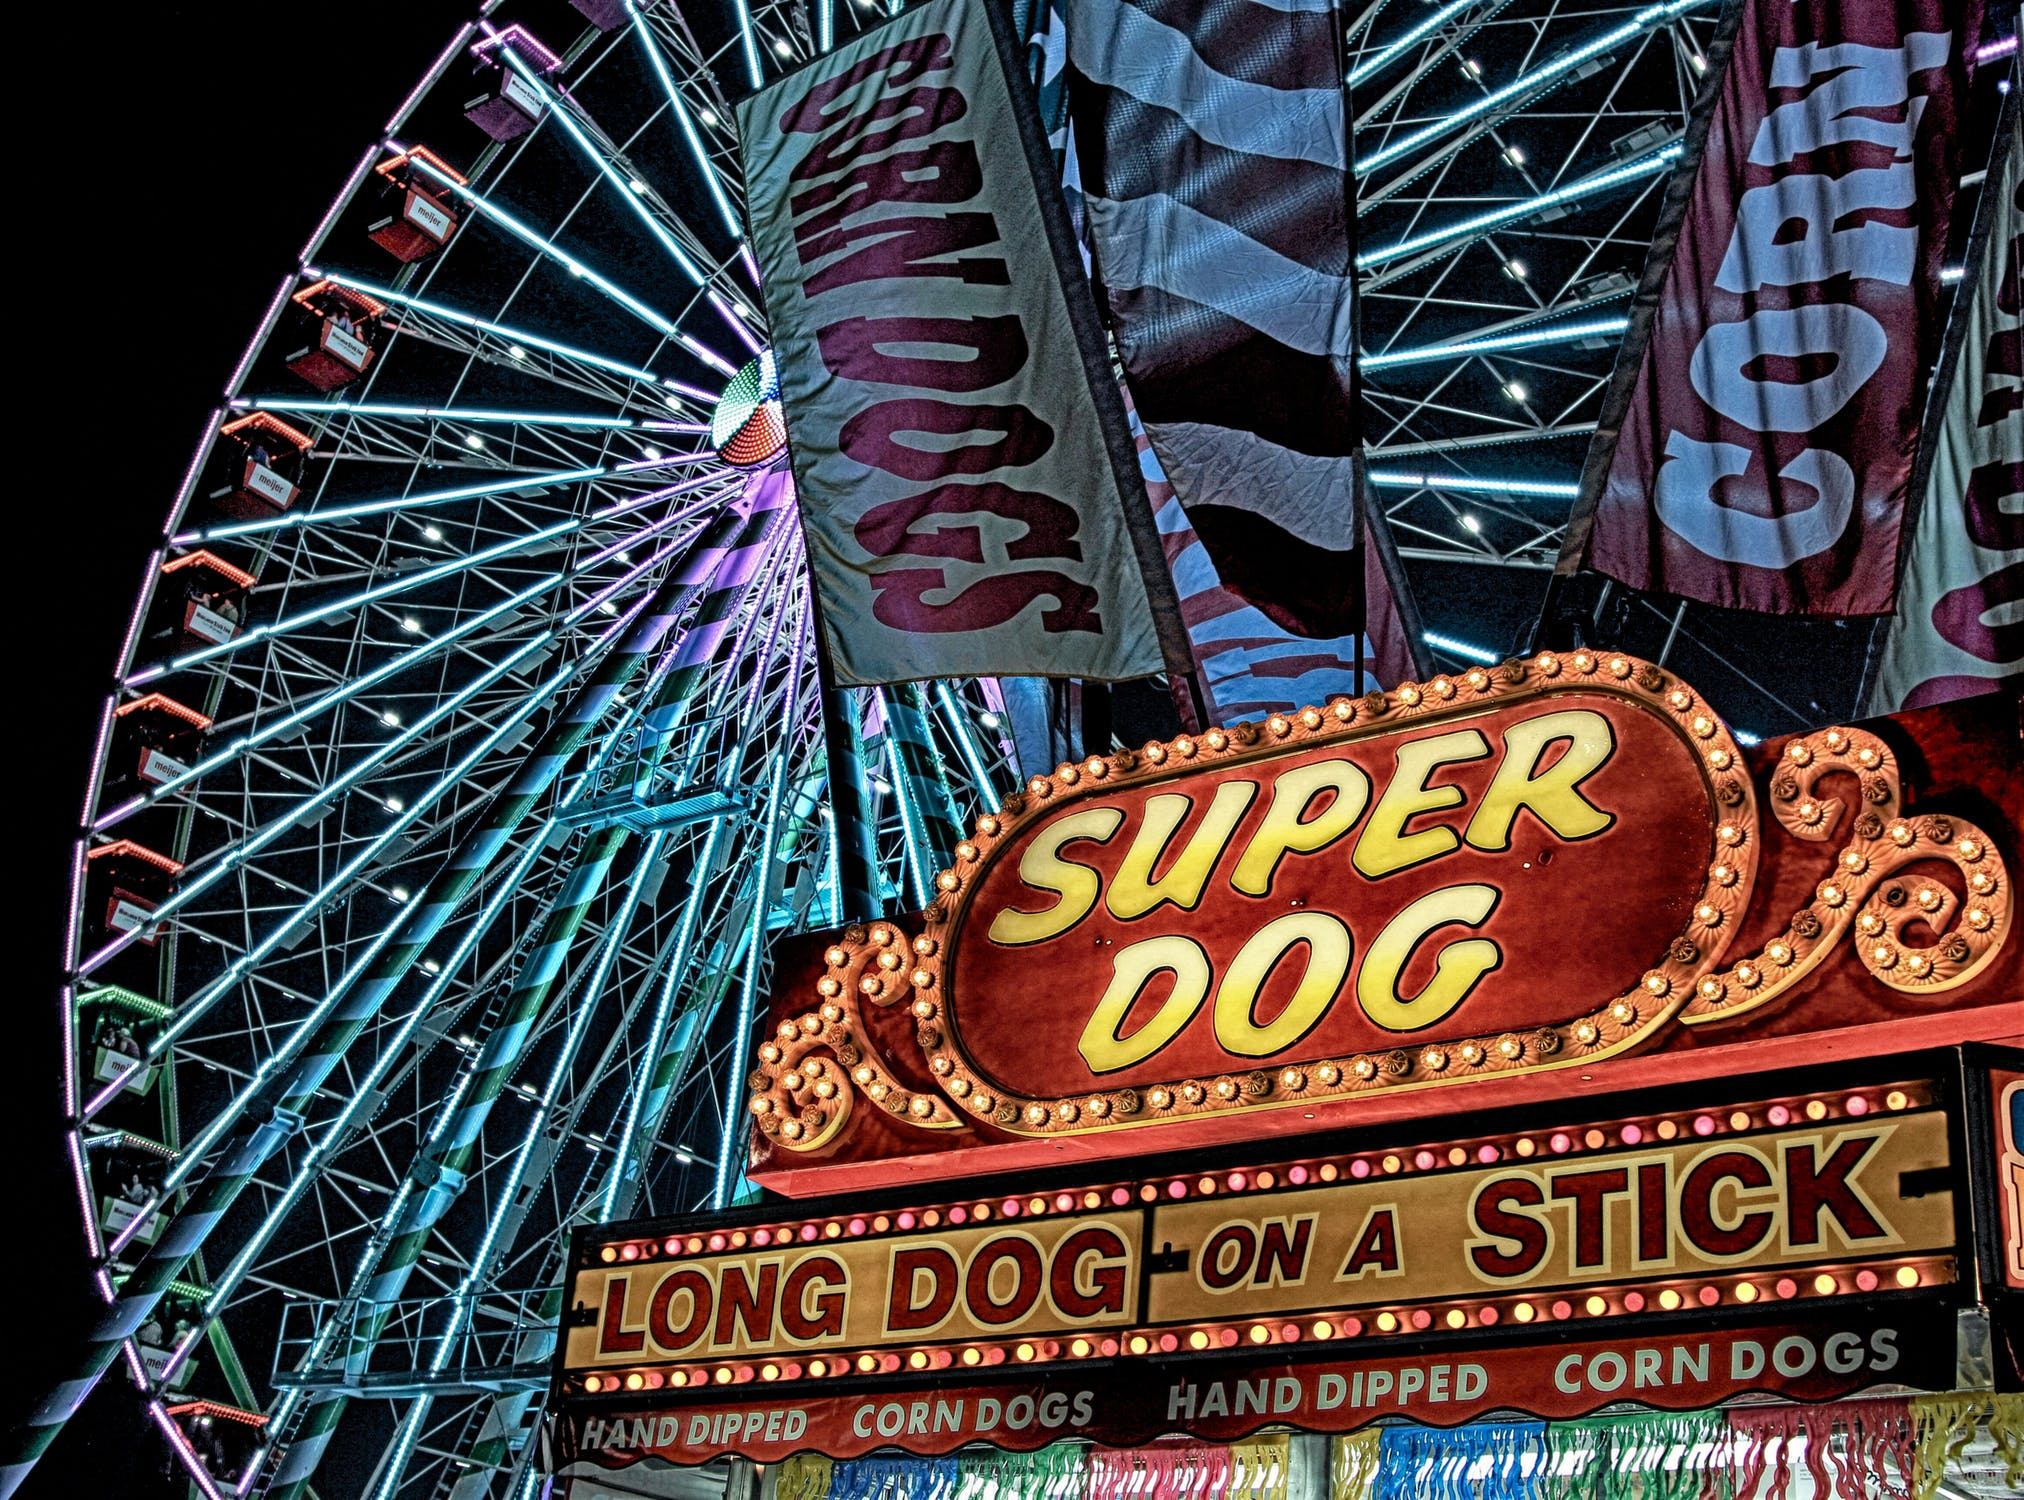 a corn dog stand in front of a ferris wheel